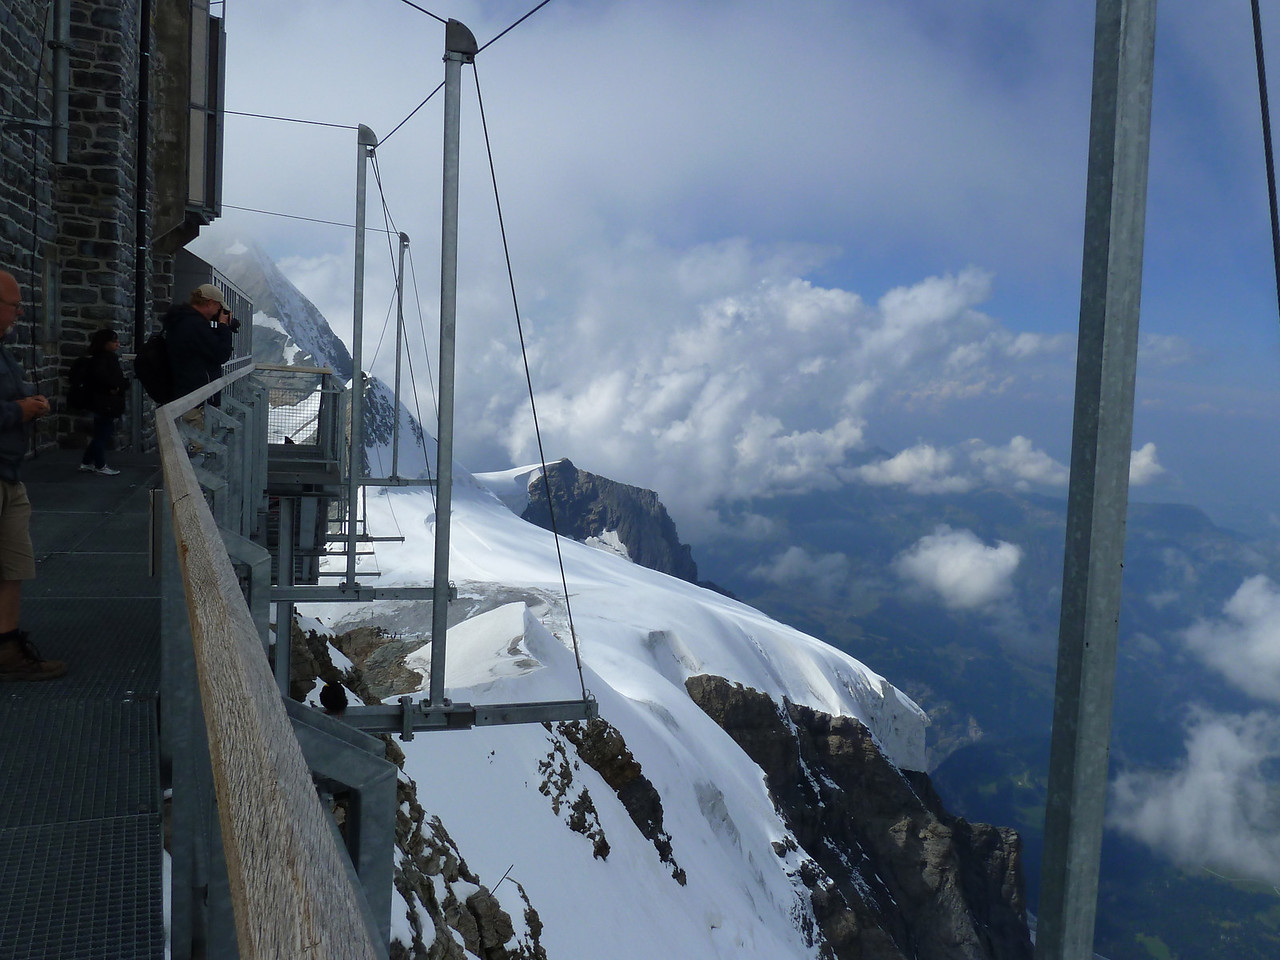 At the Jungfraujoch Look Out.